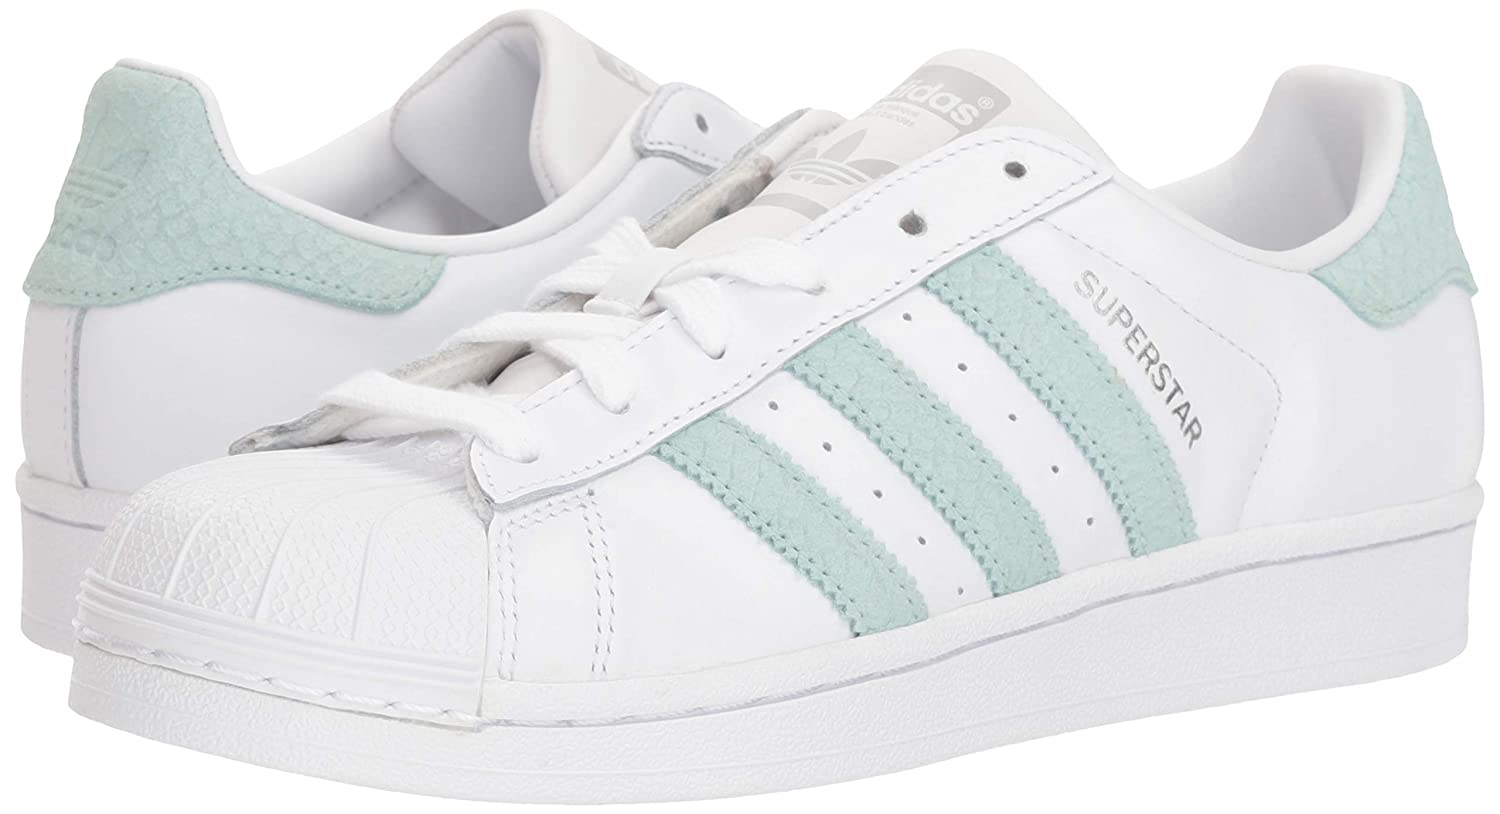 Adidas-Superstar-Women-039-s-Fashion-Casual-Sneakers-Athletic-Shoes-Originals thumbnail 16